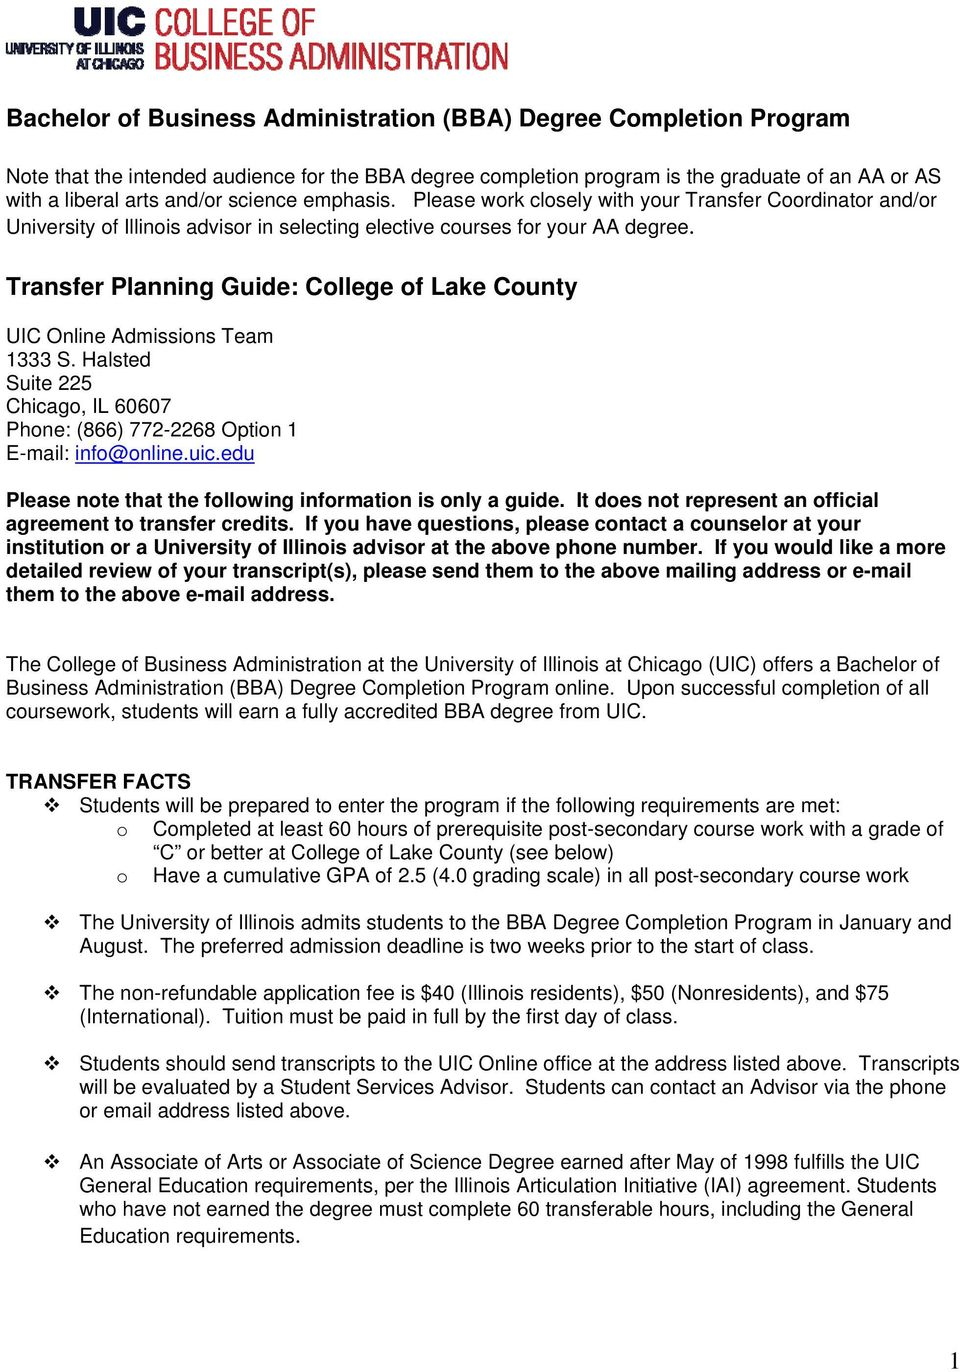 Transfer Planning Guide: College of Lake County UIC Online Admissions Team 1333 S. Halsted Suite 225 Chicago, IL 60607 Phone: (866) 772-2268 Option 1 E-mail: info@online.uic.